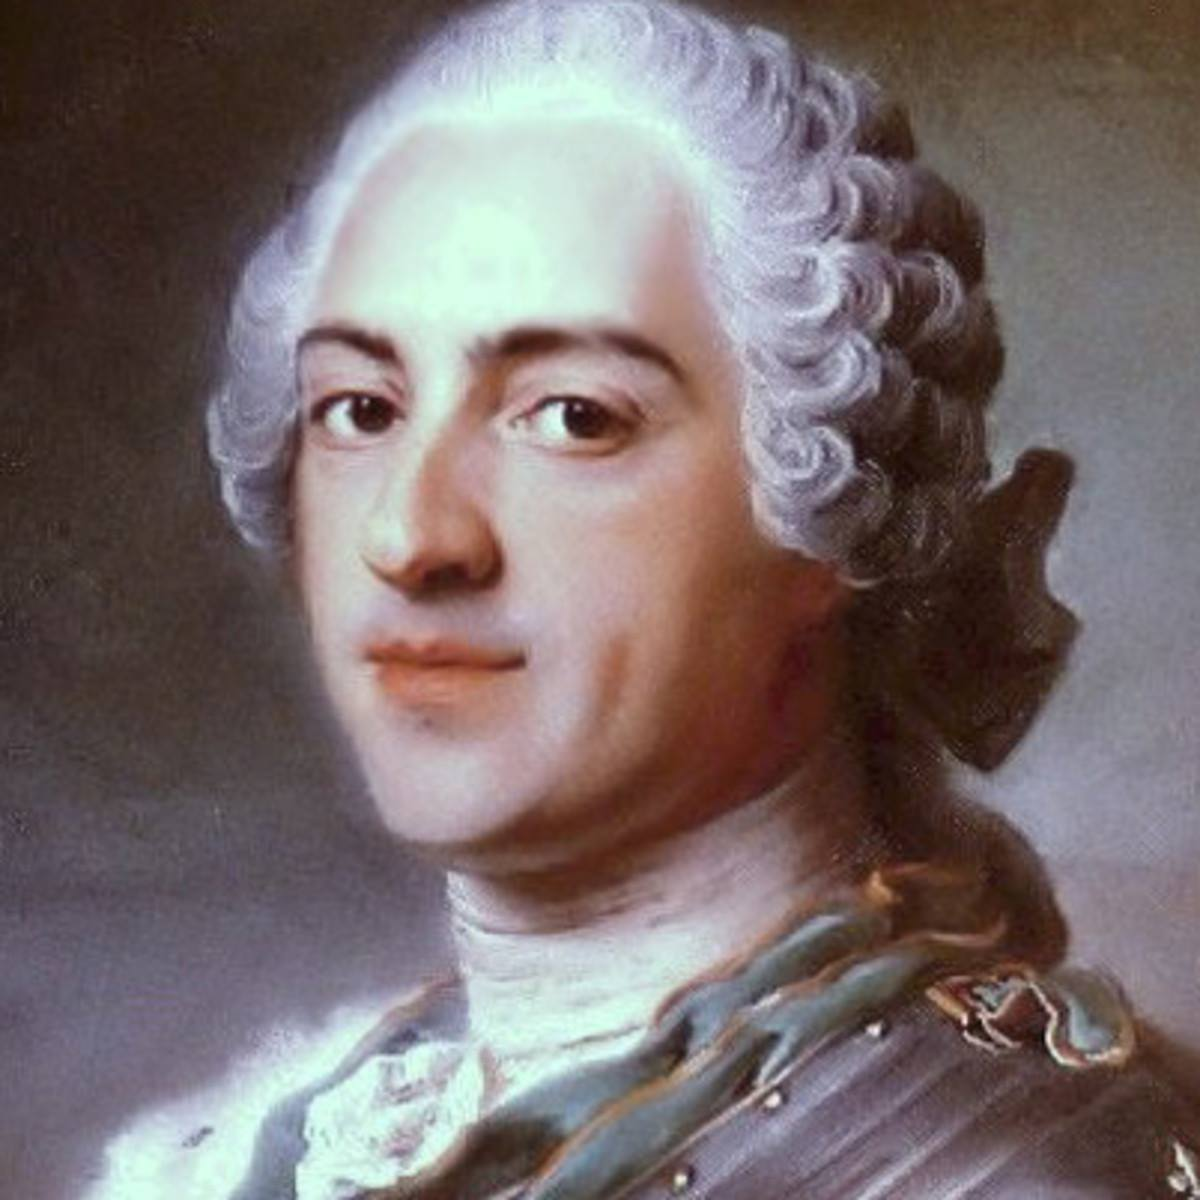 Louis XV was King of France and Navarre from 1715, when he was five years  old, until his death in 1774 at the age of sixty-four.